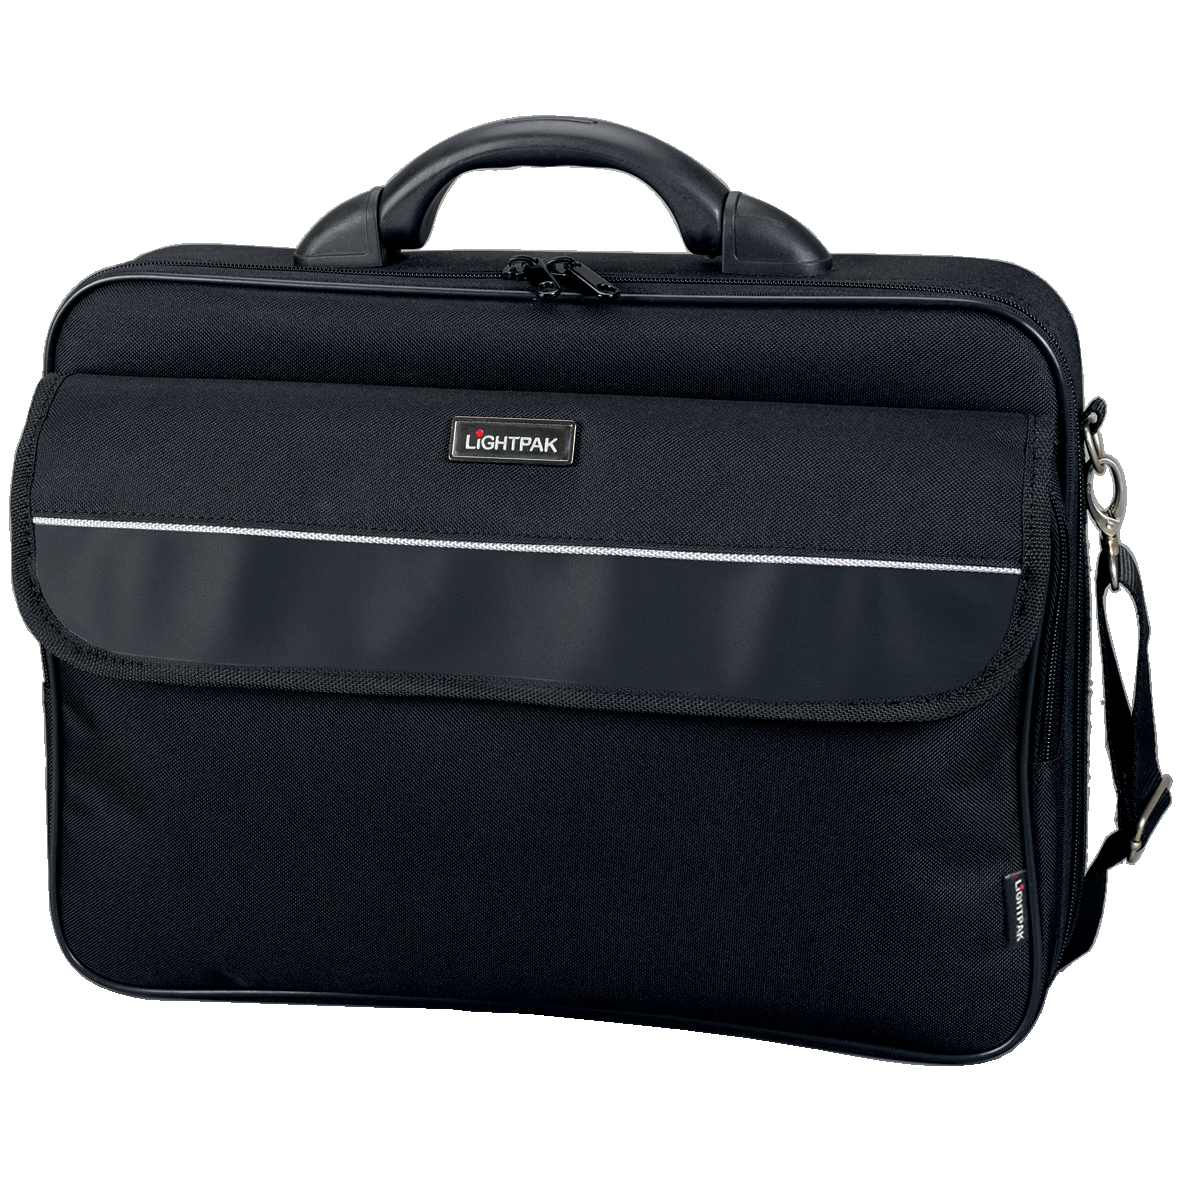 Briefcases & Luggage Lightpak Elite Small Laptop Case Nylon Capacity 15.4in Black Ref 46110